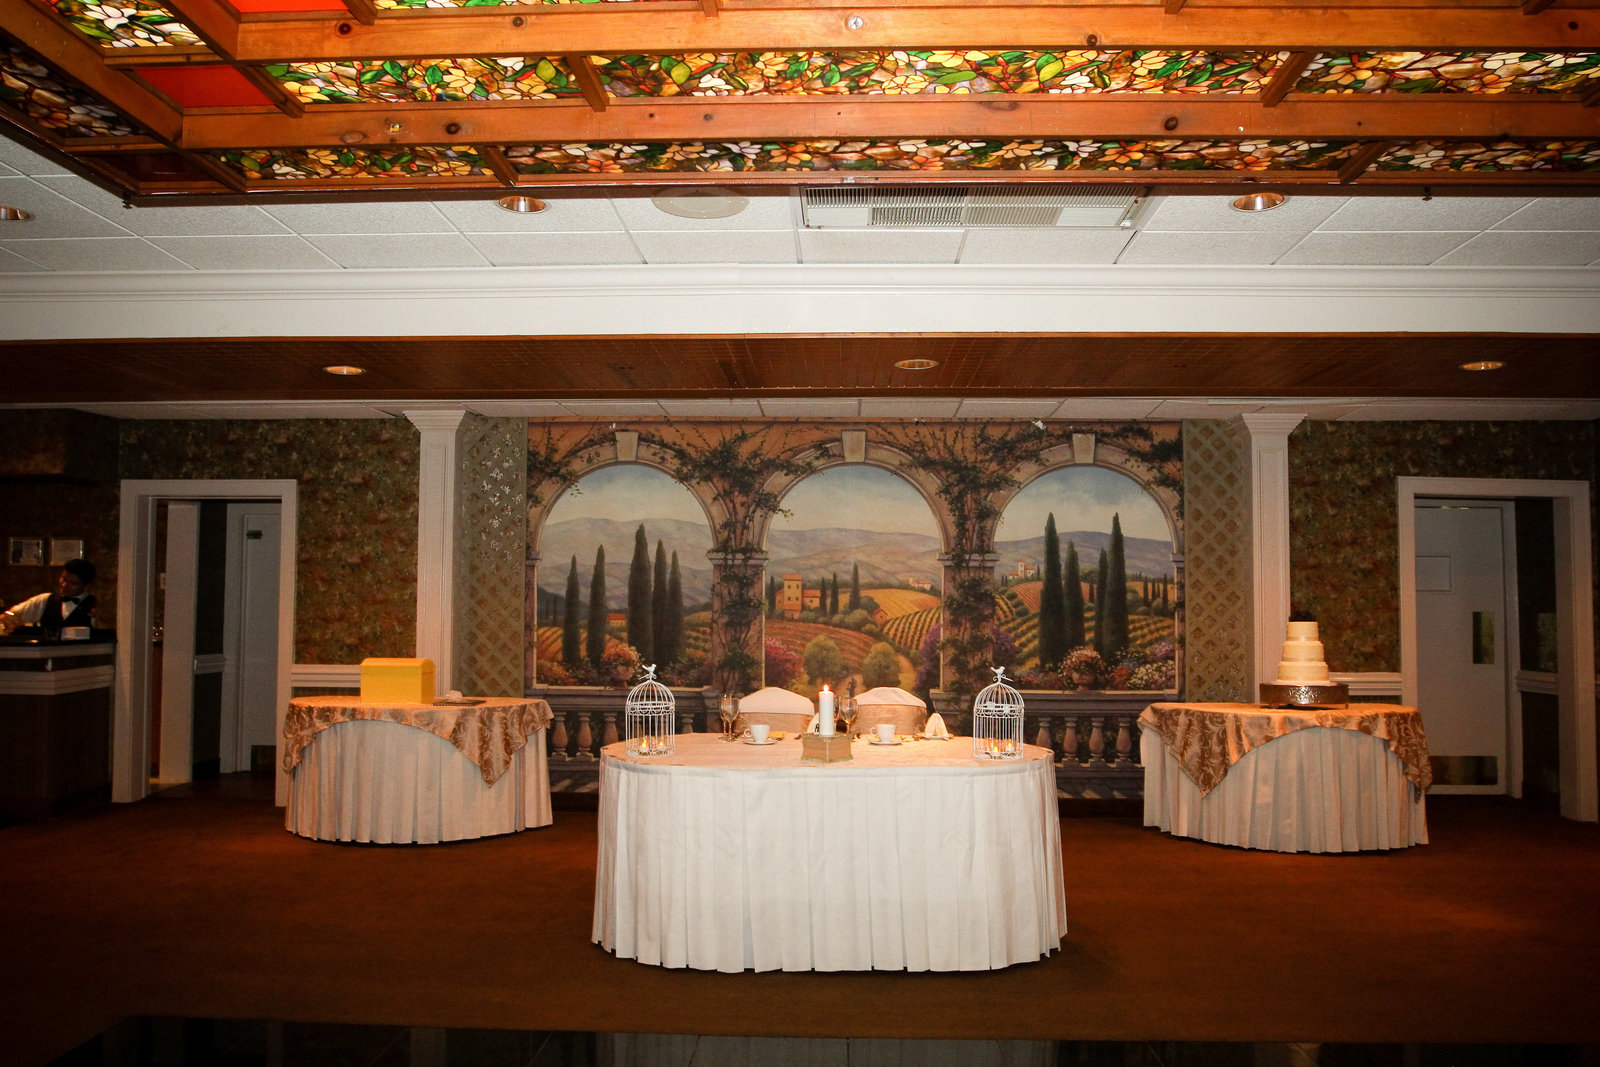 Ria-Mar-Restaurant-&-Bar-Wedding-Photos-0271